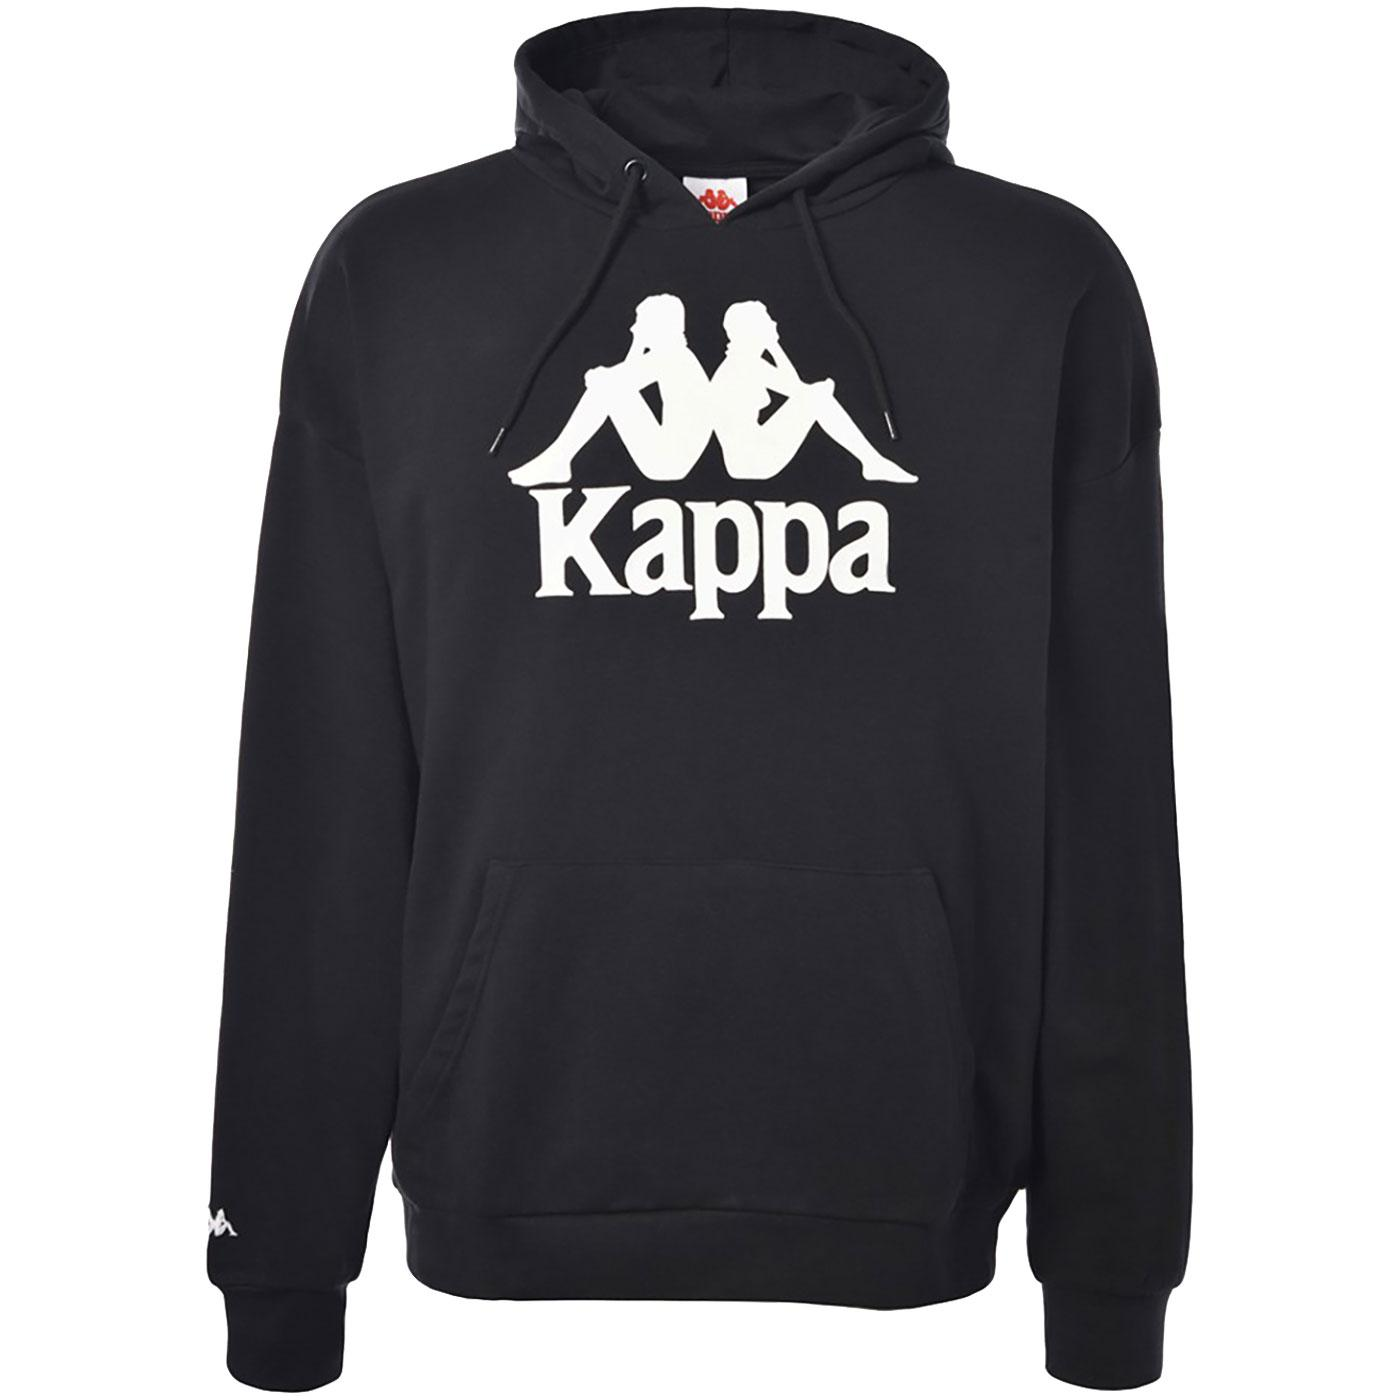 Tenax KAPPA Men's Retro Hooded Sweater (Black)